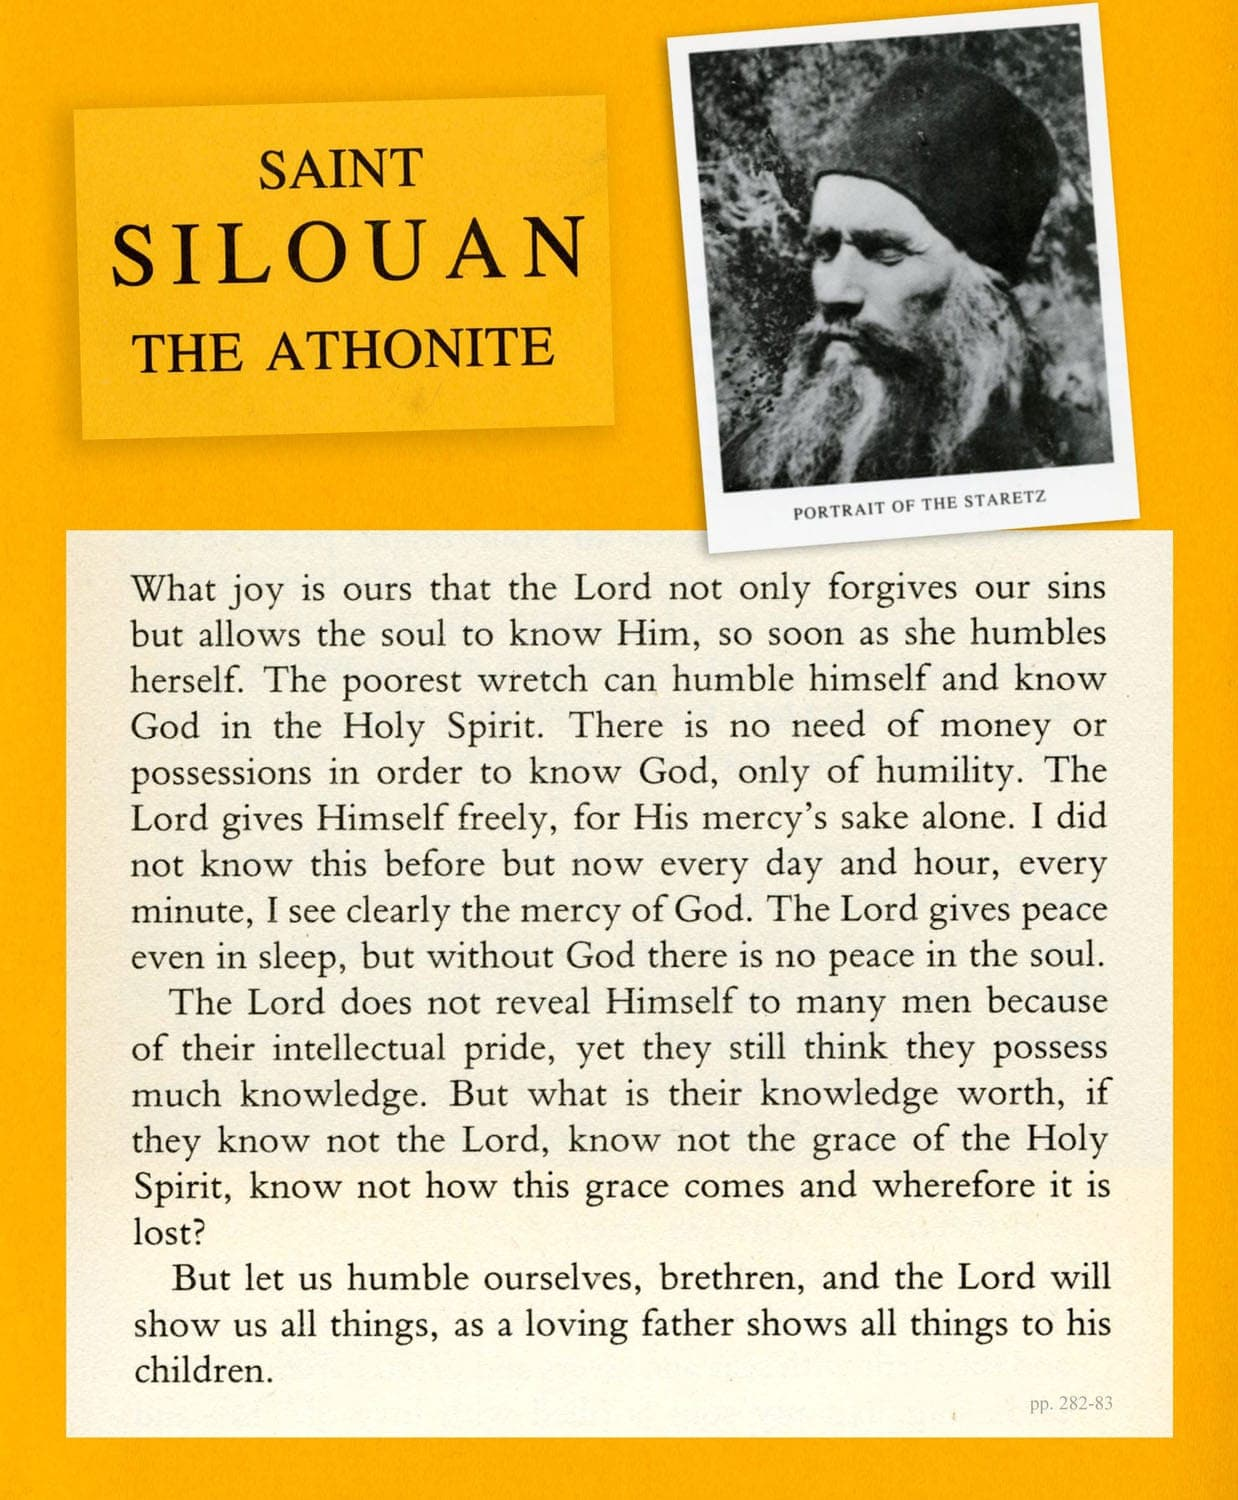 Saint-Silouan-the-athonite-how-the-lord-reveals-himself-to-people-282-83